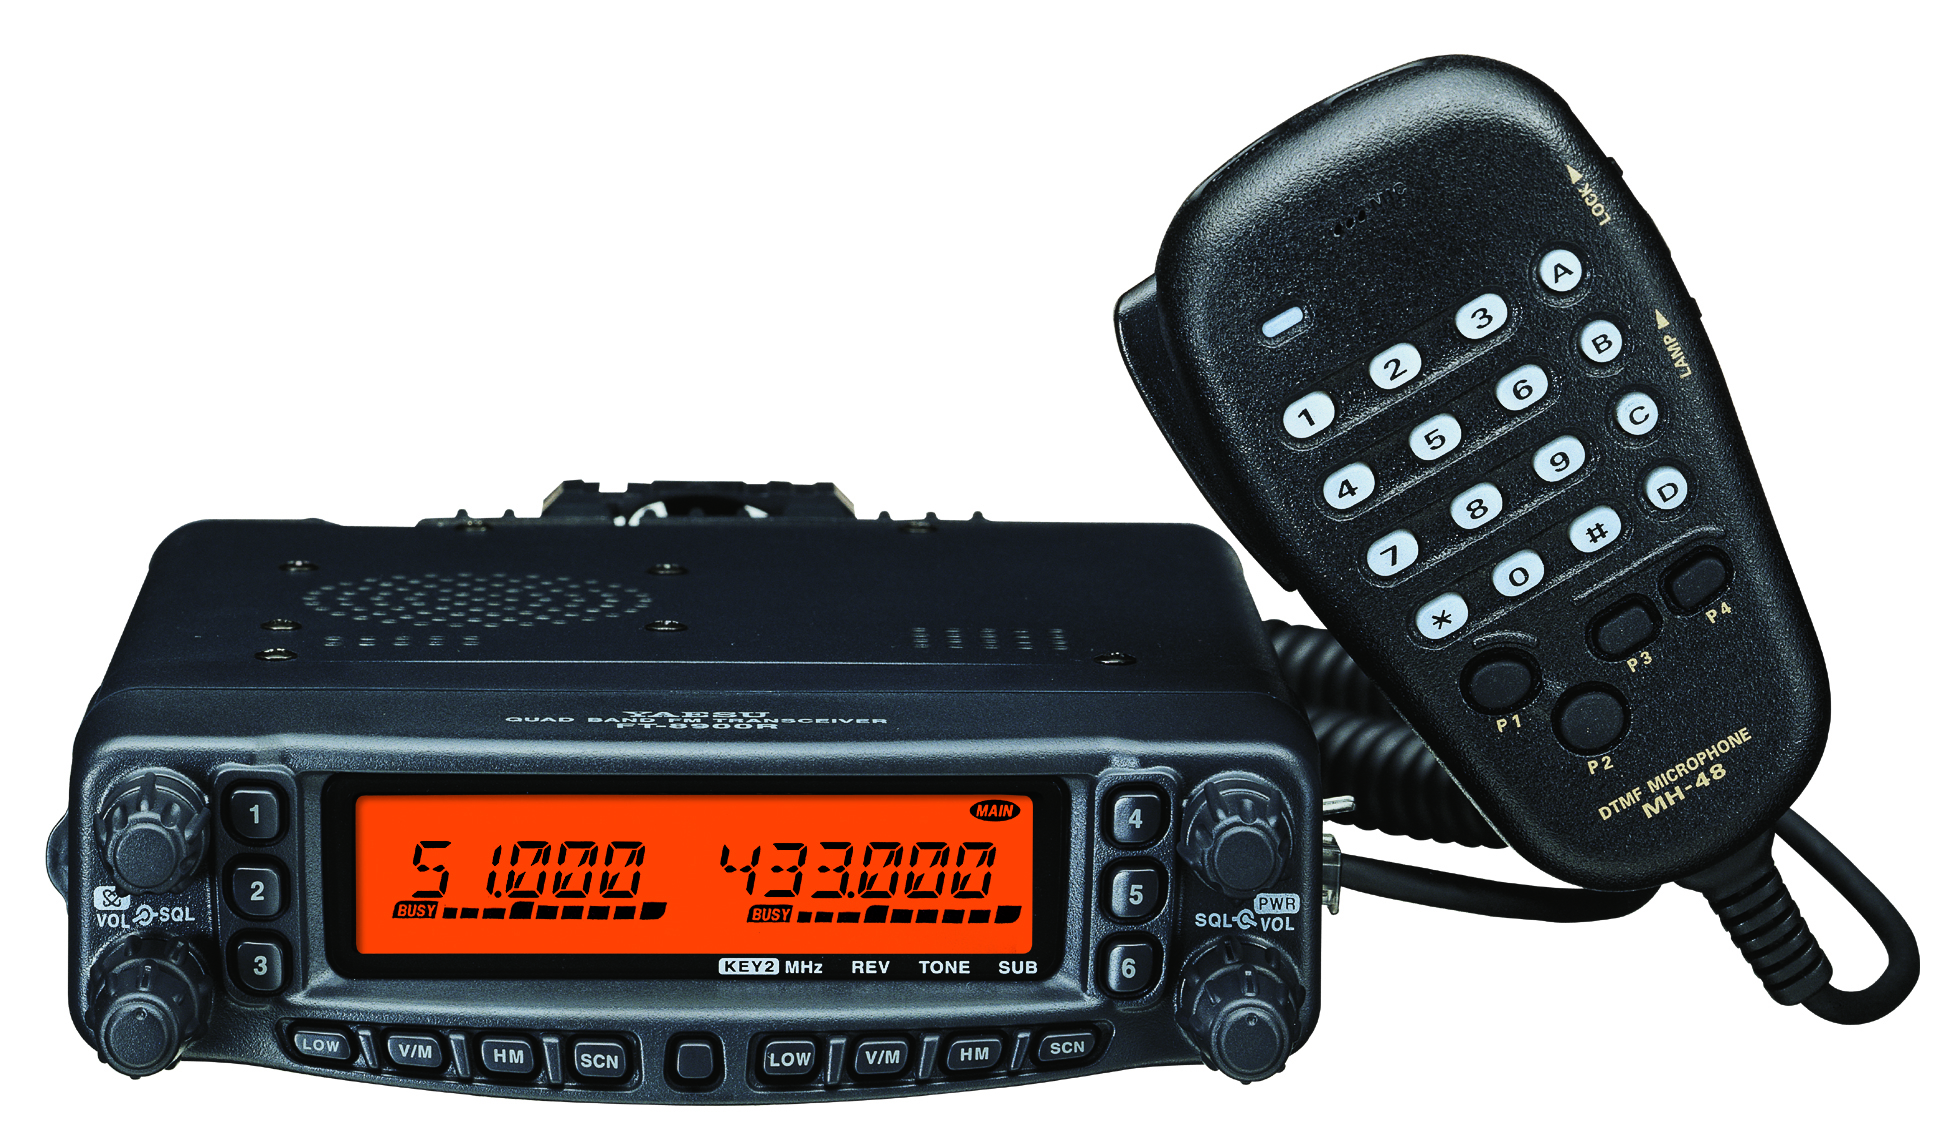 Yaesu FT-8900 R/E  Quad Band Mobile Transceiver Free separation